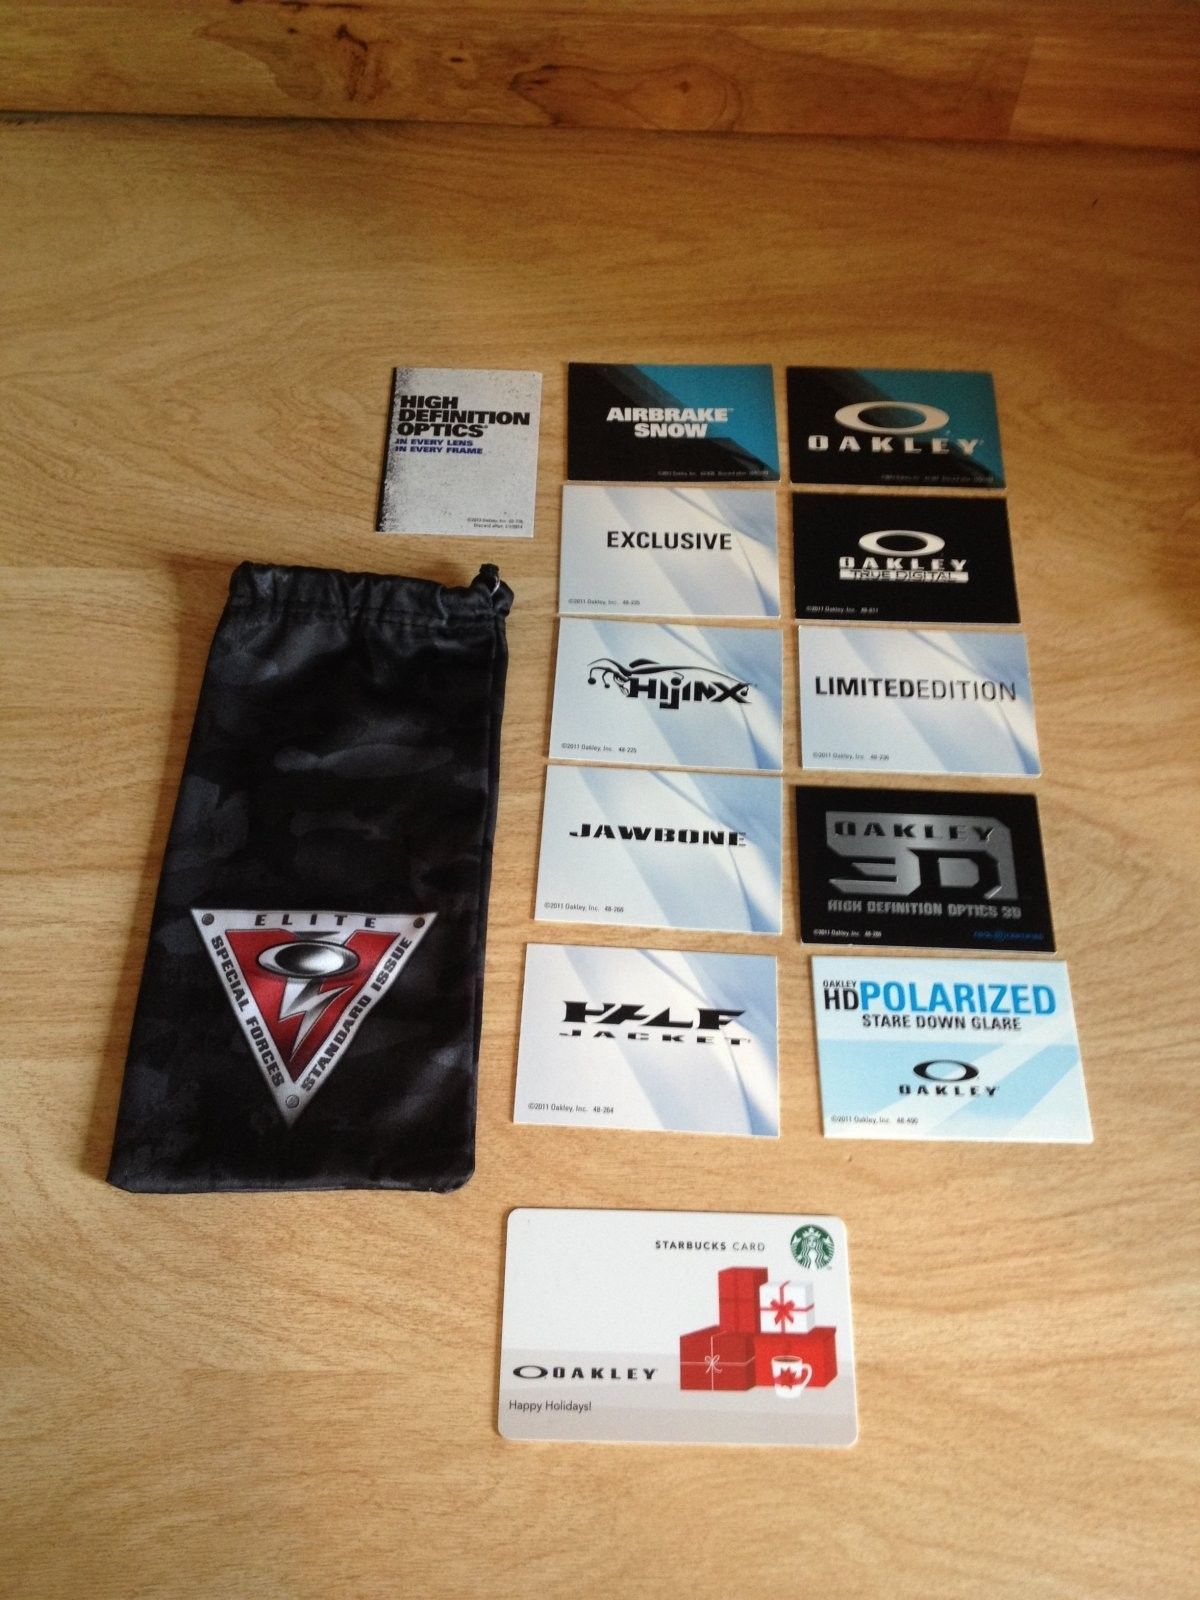 Few Bags, Pins, Polarized Lenses, Rubbers, And More! - photo 1.JPG